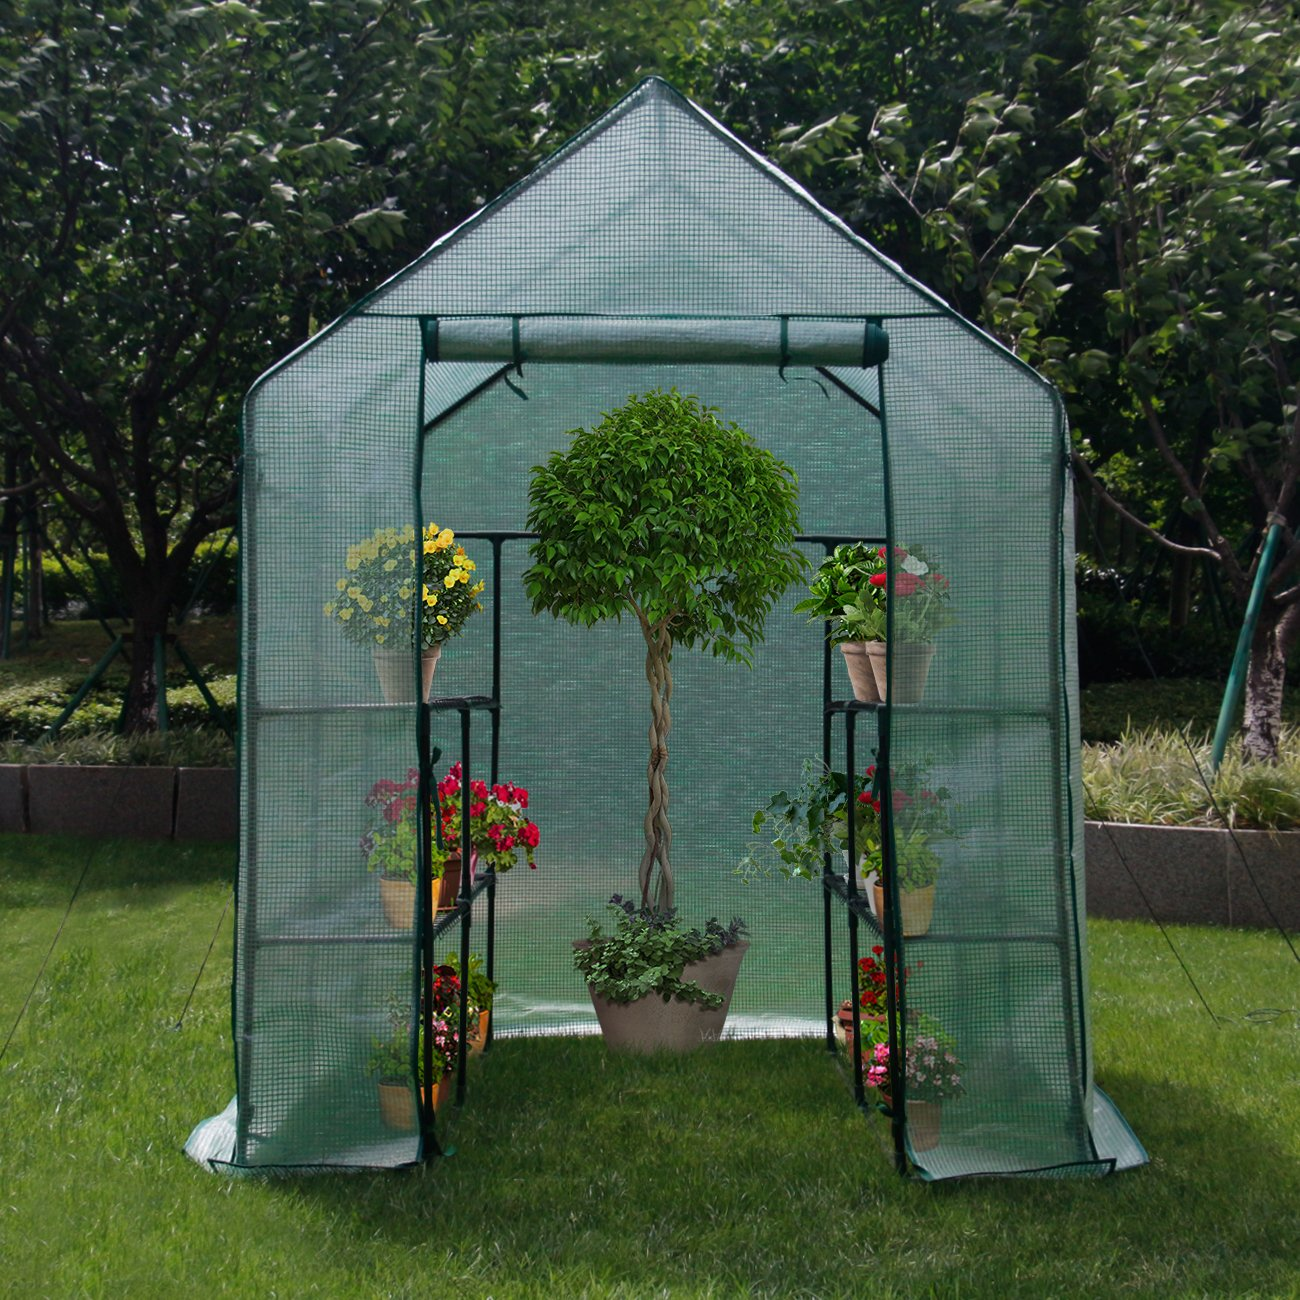 AODAILIHB Reinforced PE Net 6 Layers 8 Shelves Greenhouse Suitable for Lawn and Garden Steel Structure Assembly, 8 Fixed Buttons 4 Floor Fasteners, H x L x W:76.77 x 56.29 x 56.29 inch (02) by AODAILIHB (Image #3)